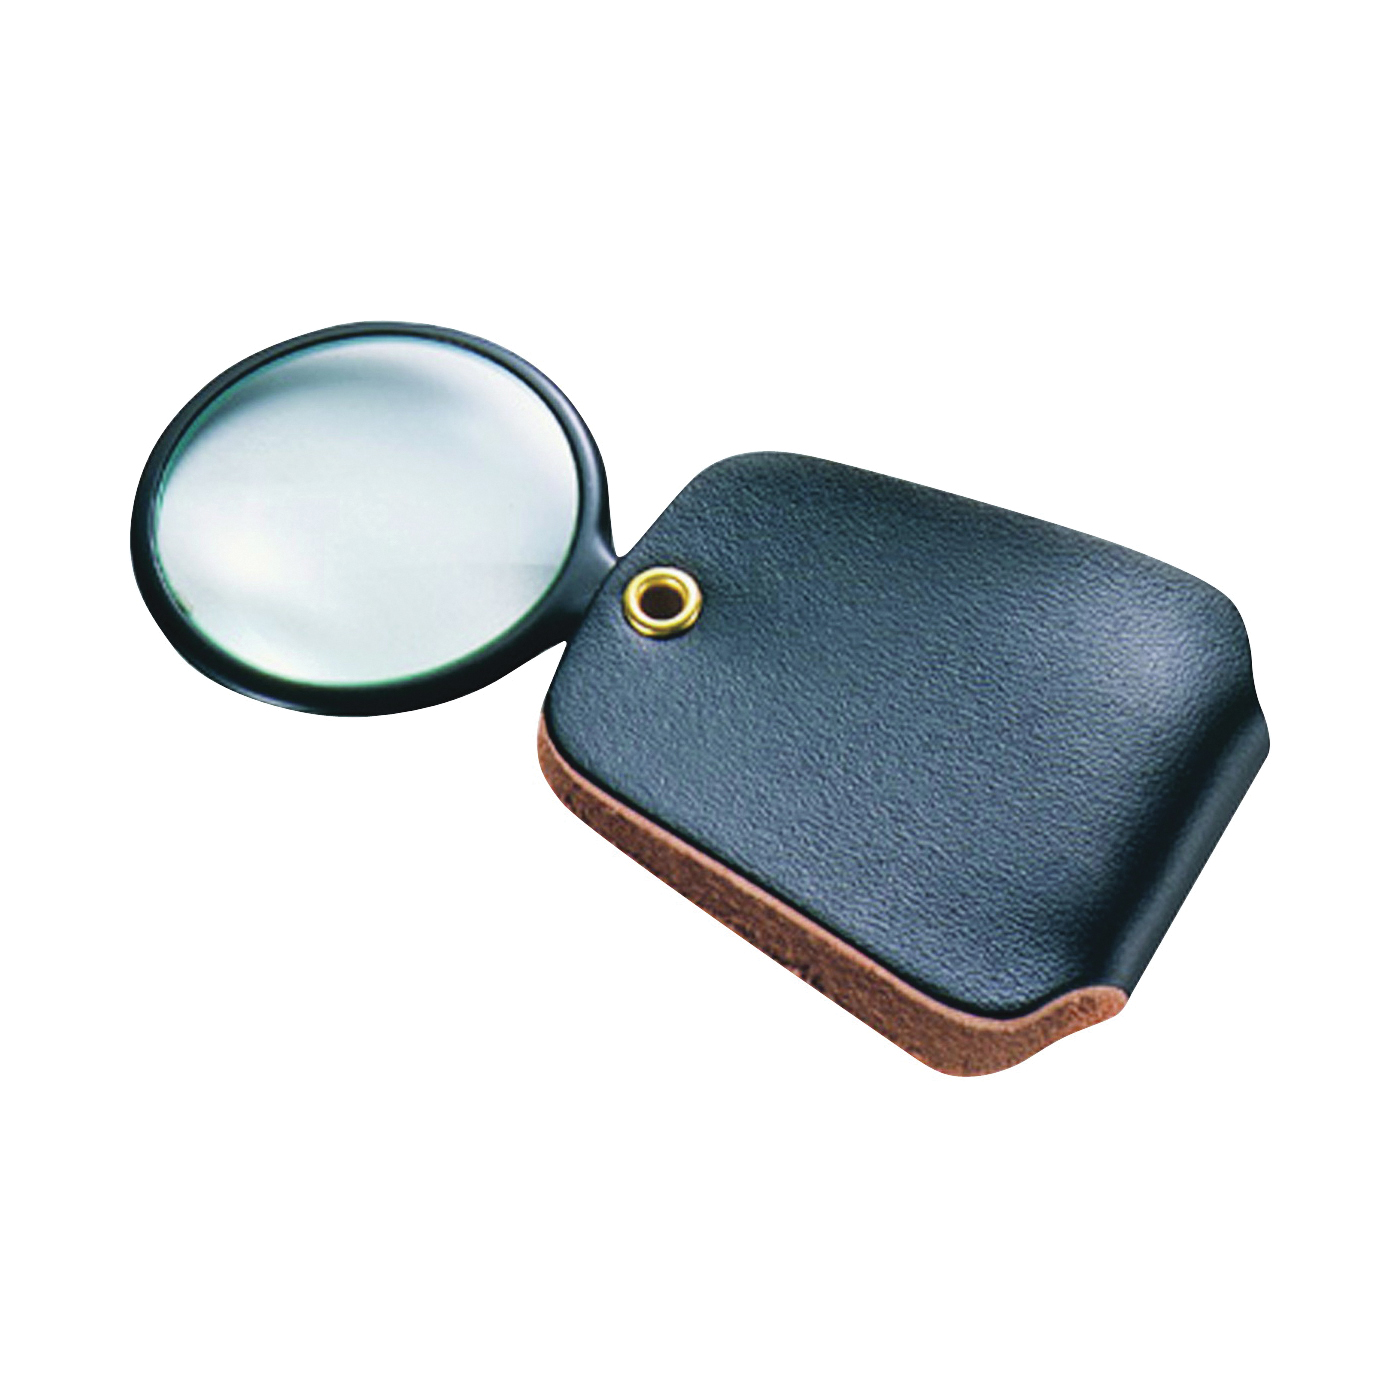 Picture of GENERAL 532 Pocket Reading Magnifier, 1 in Mirror, 2.5X Magnification, 4 in L Focal, Glass Mirror